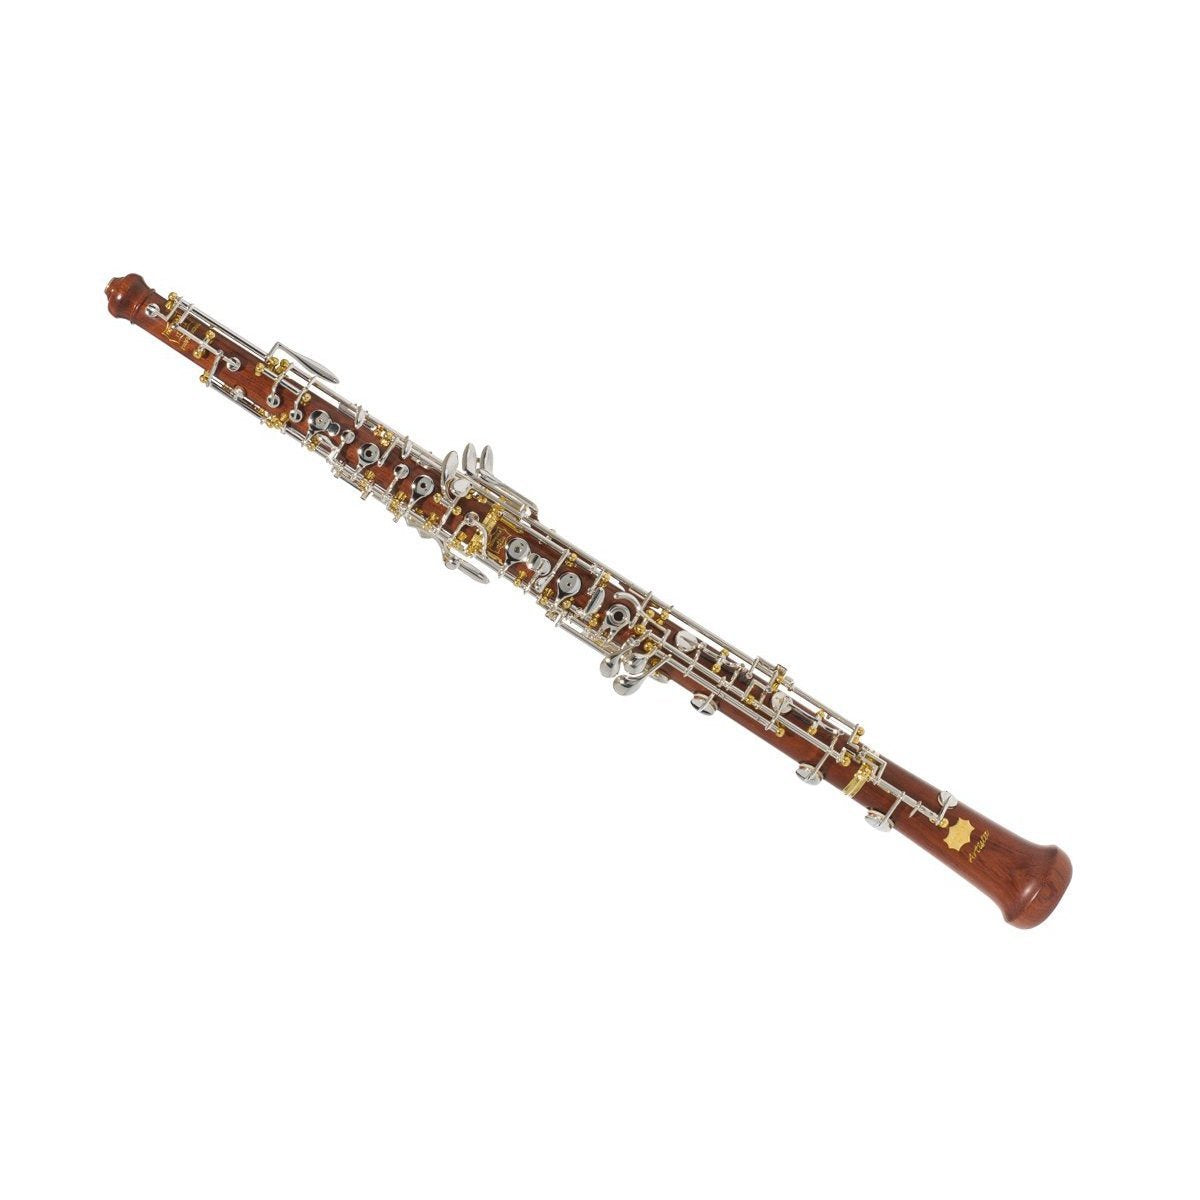 Patricola - Virtuoso PT.2 Full-Automatic Oboe (Rosewood with Silver-Plated Keys)